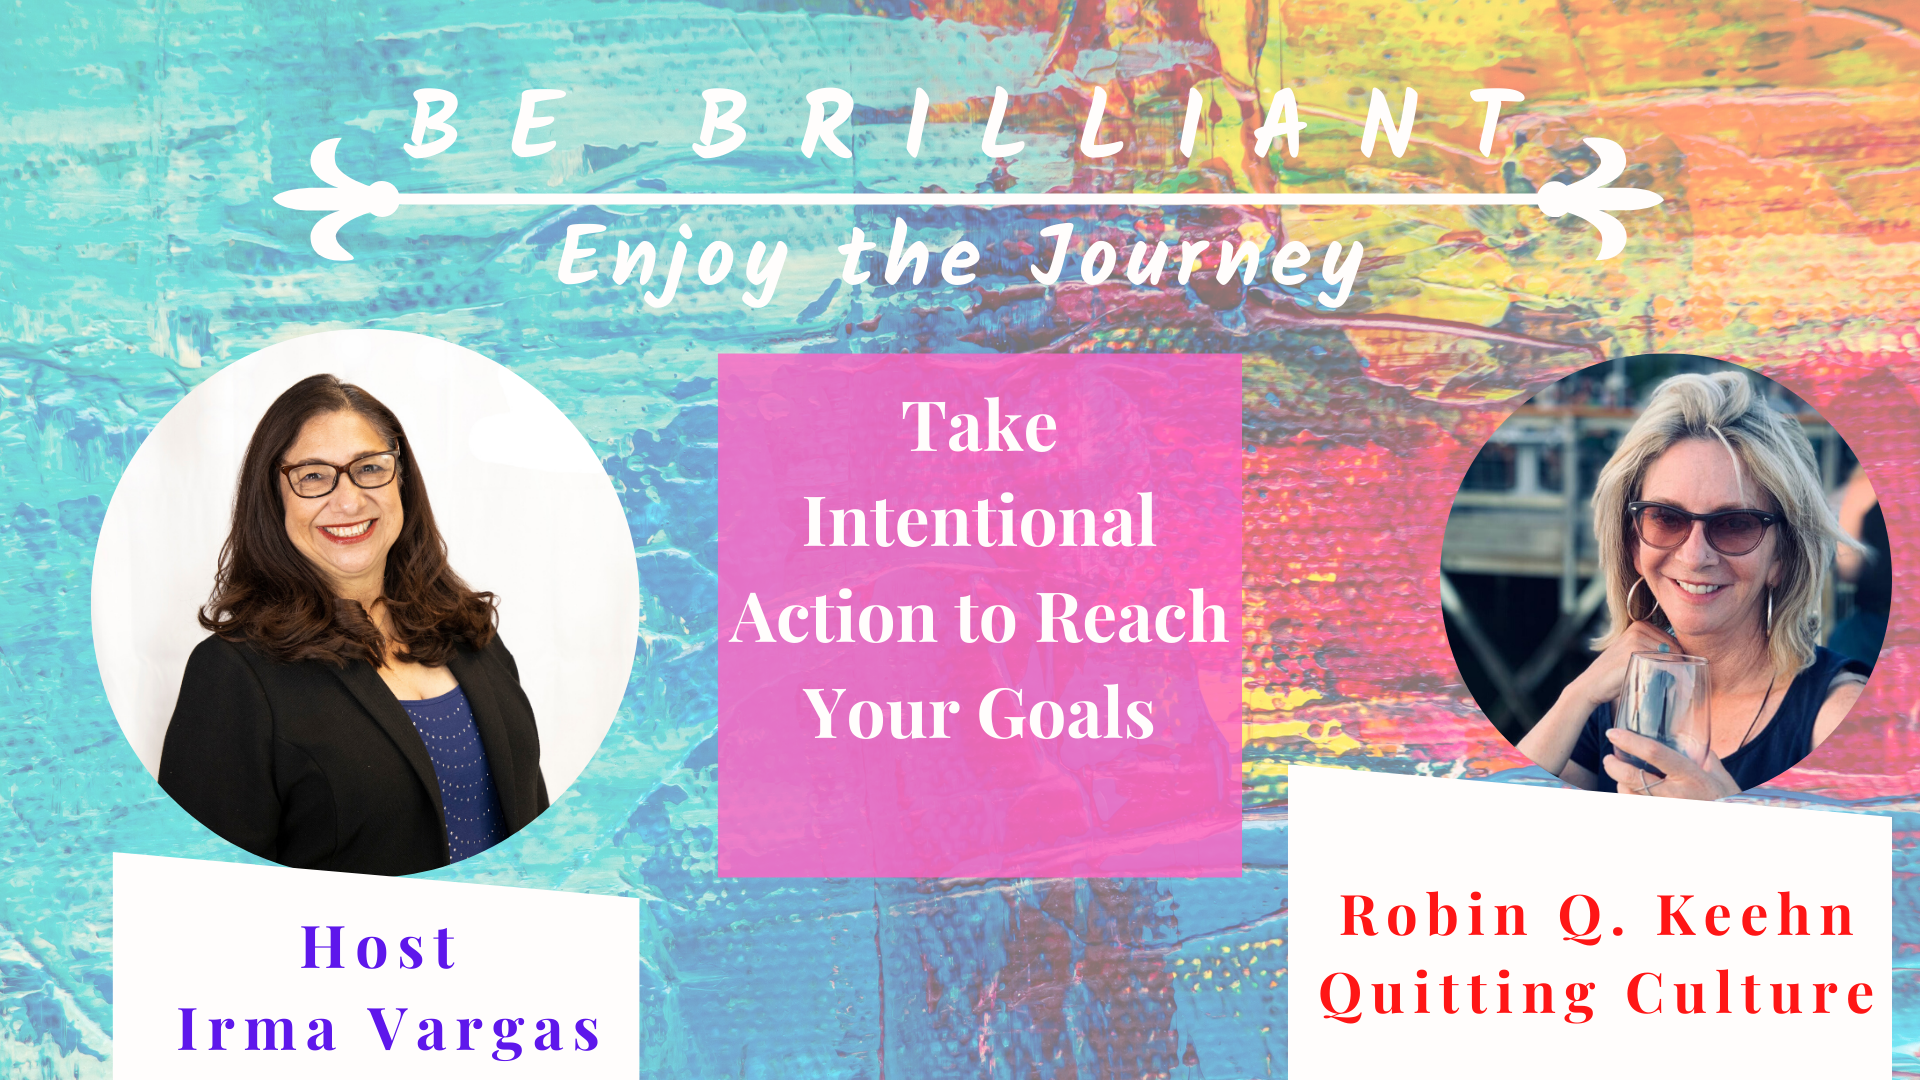 Take Intentional Action to Reach Your Goals